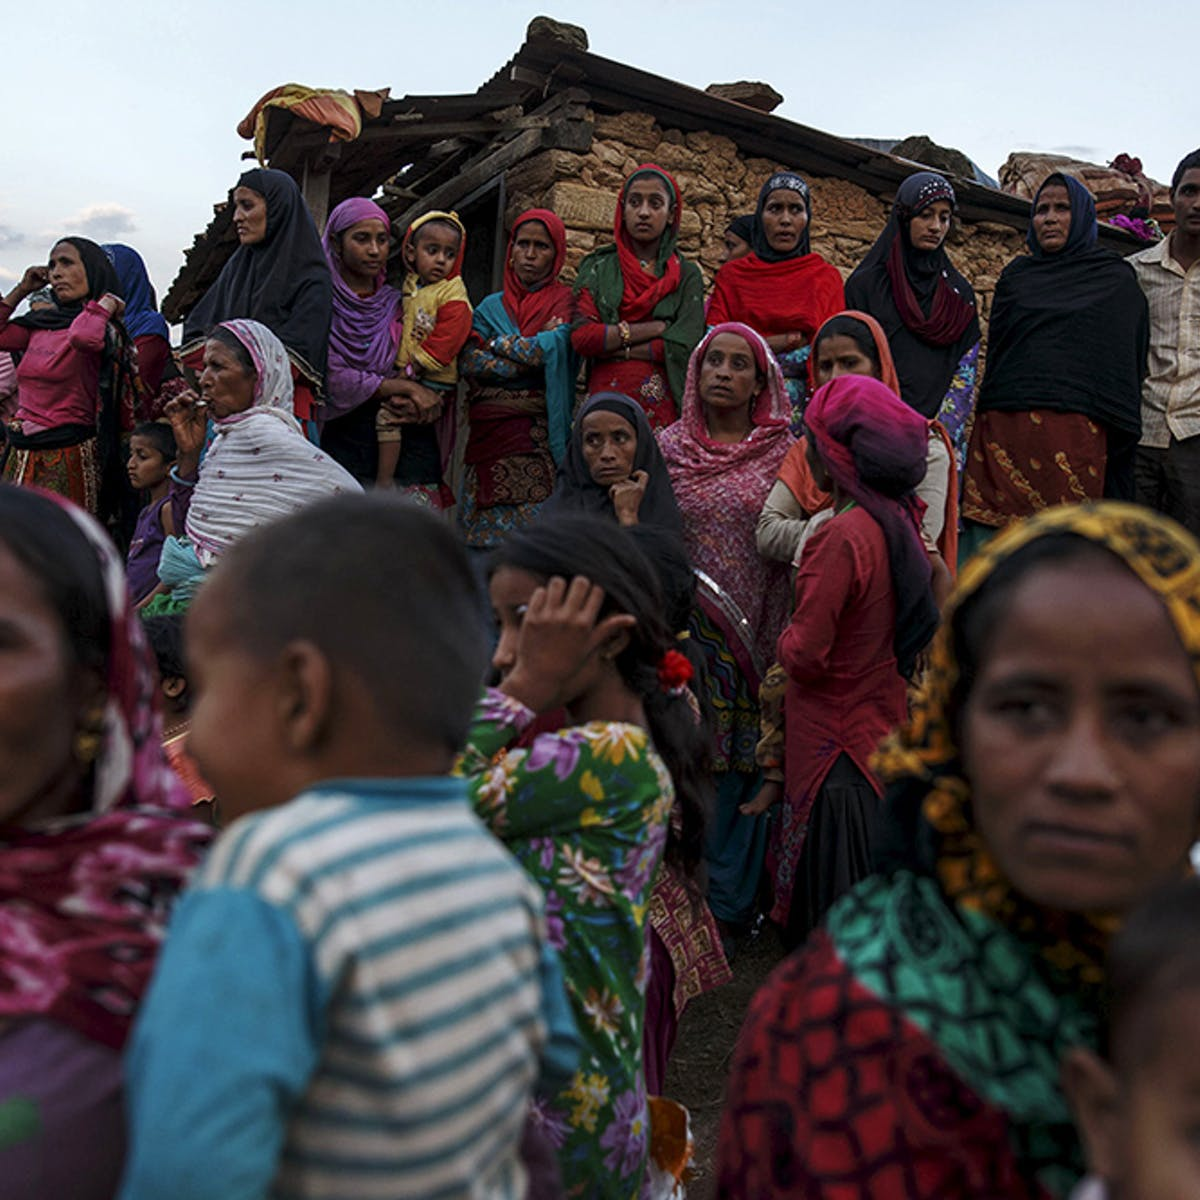 Nepal earthquake deals severe hit to culture, economy but may spark